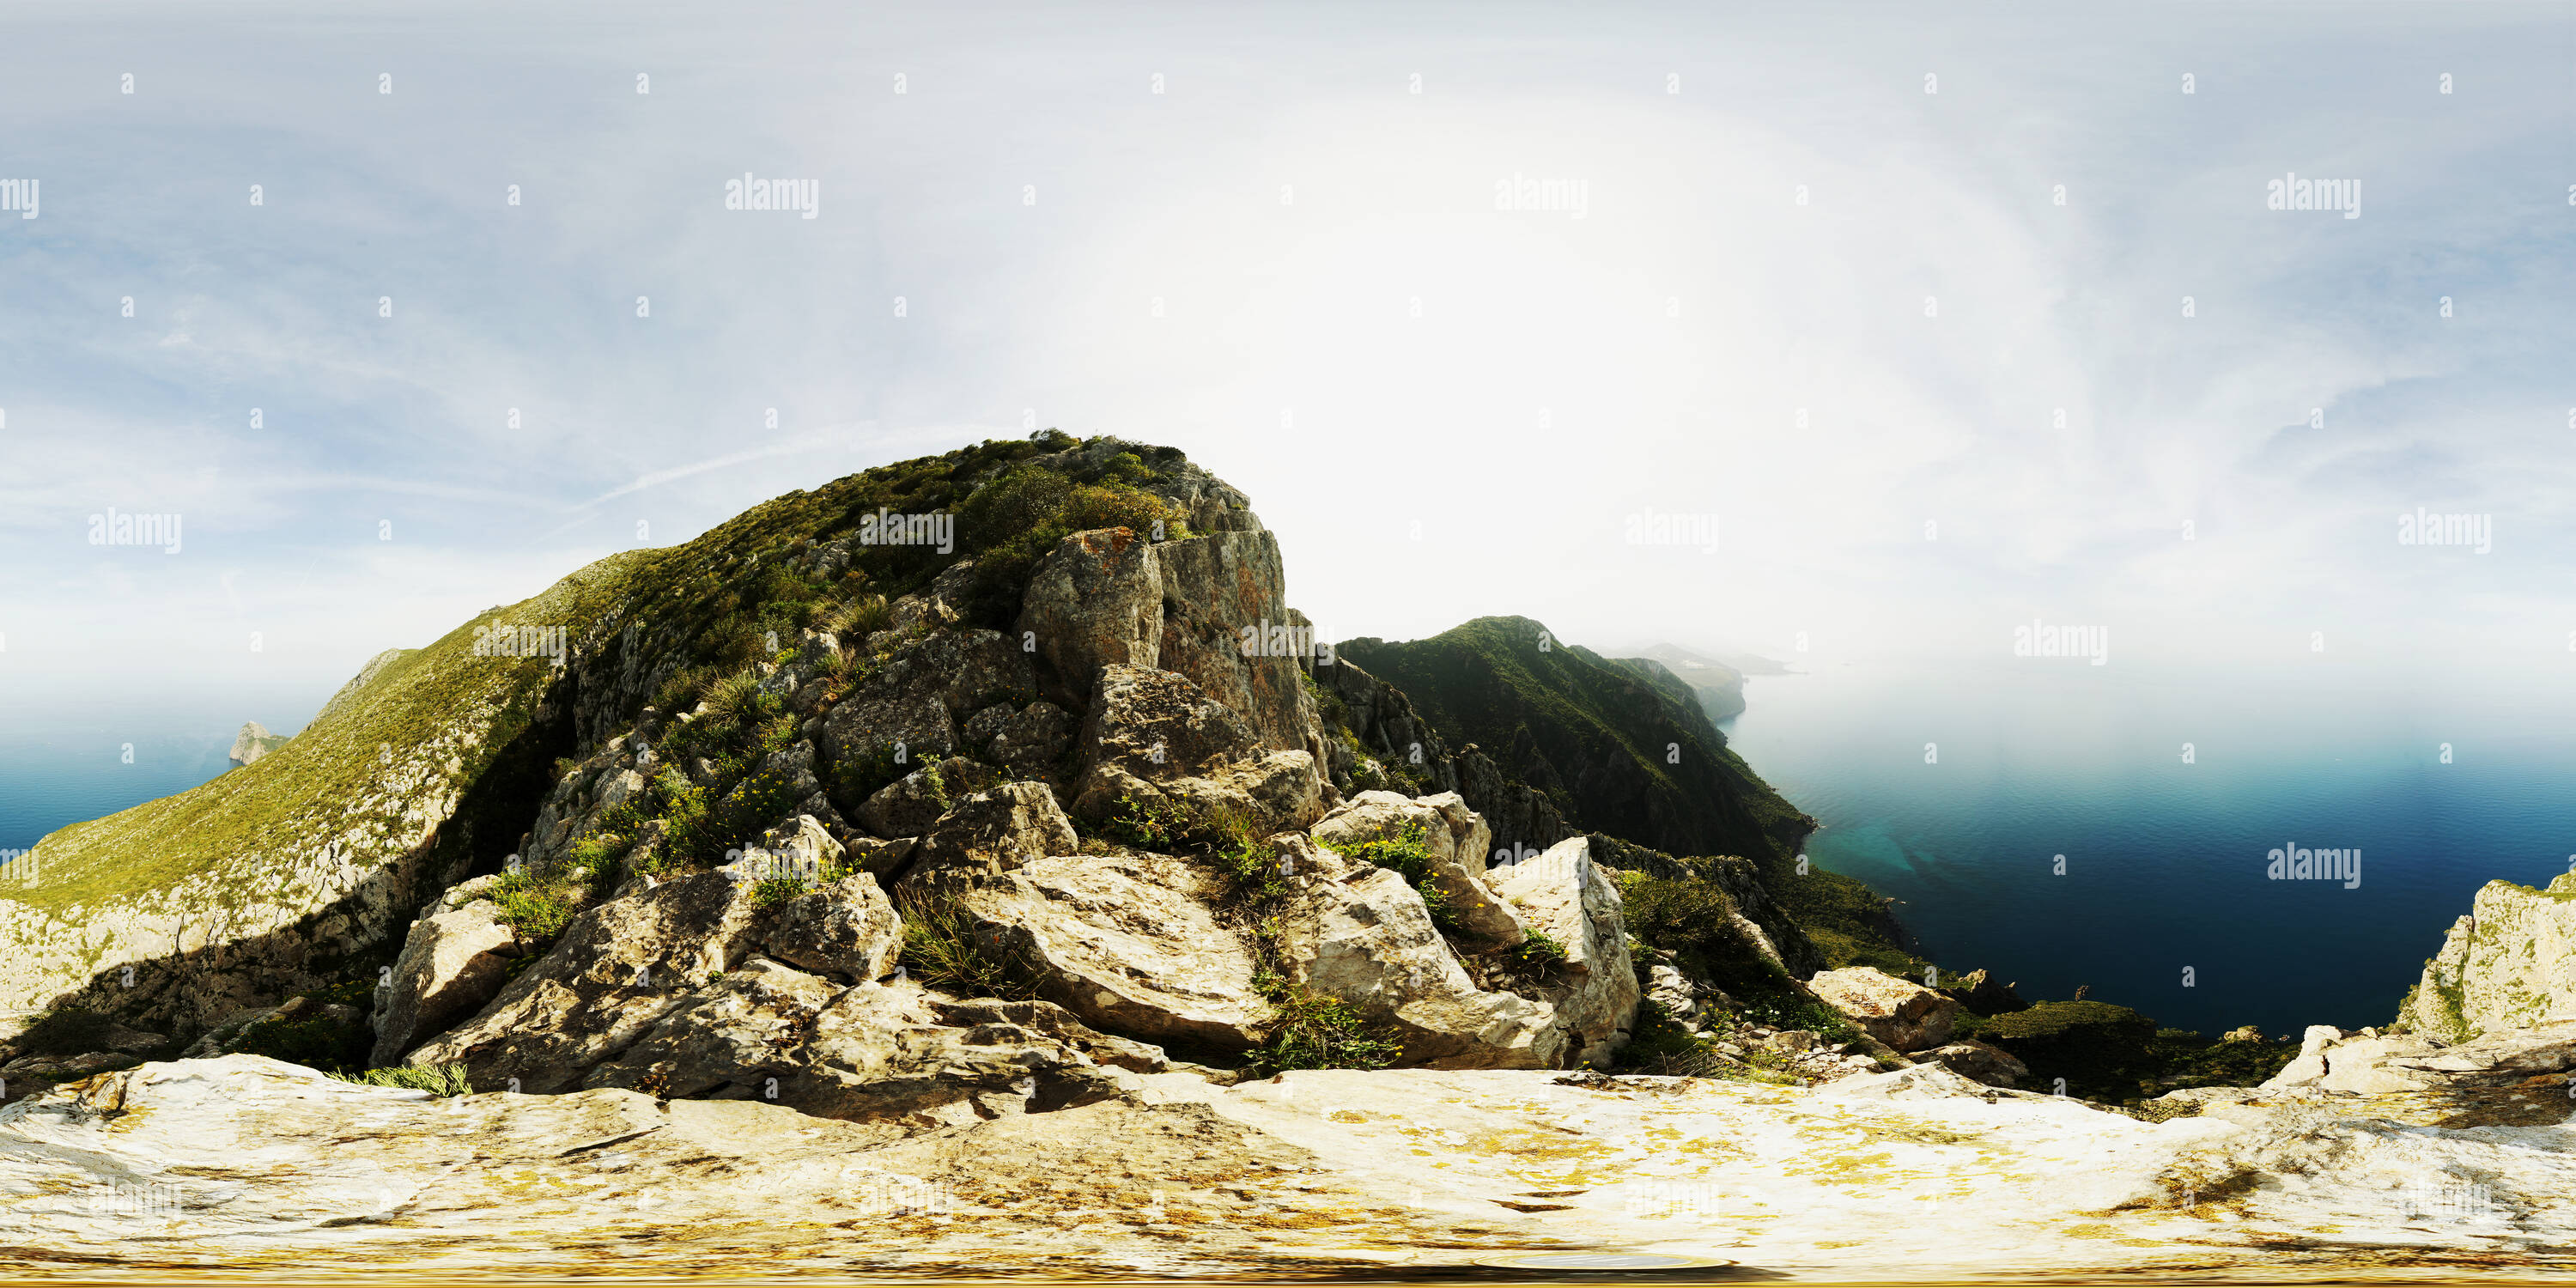 360 degree panoramic view of North Face of Gouraya at Bejaia